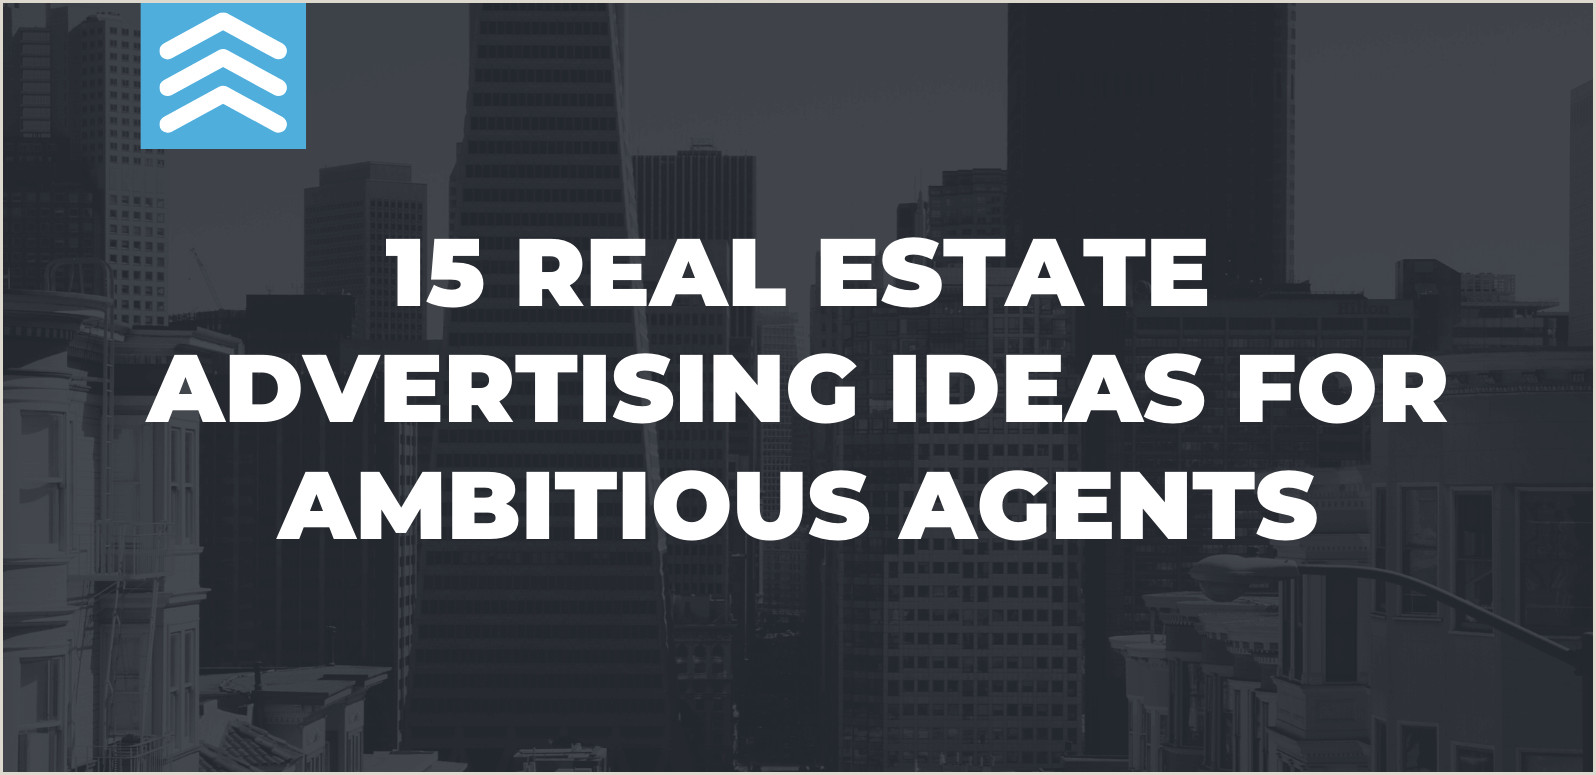 Cool Unique Business Cards For Realtores Real Estate Advertising 24 Ideas And Tactics To Attract